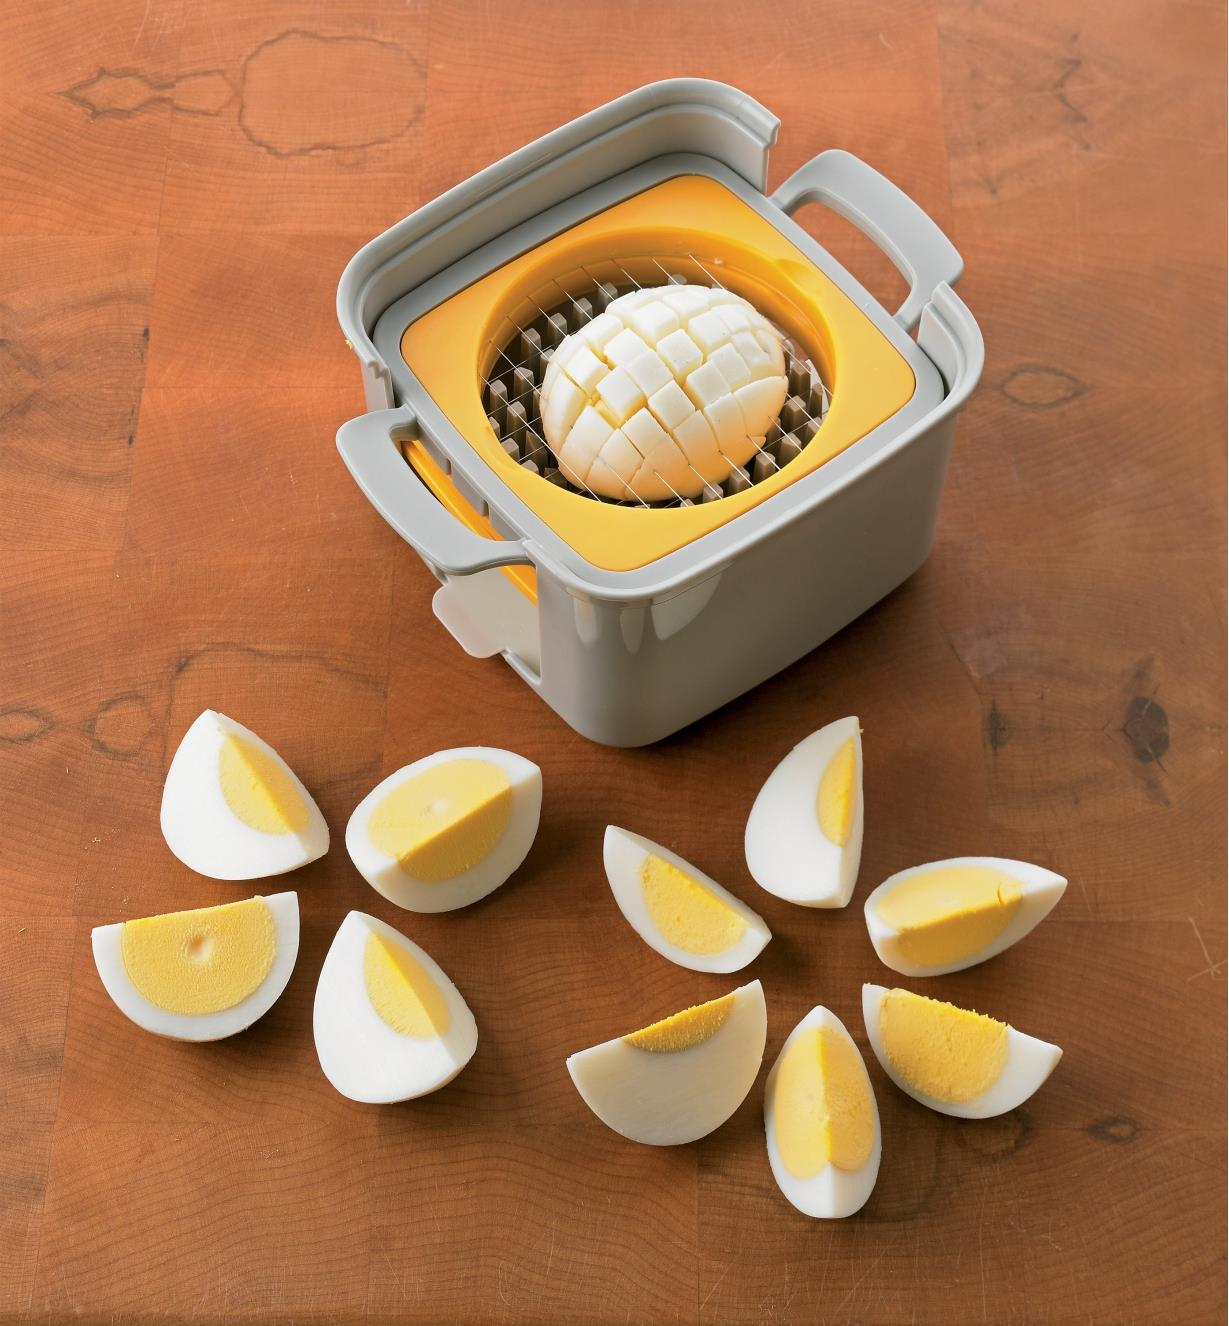 Egg Cutter slicing an egg, sitting next to eggs that have been cut into four and six sections